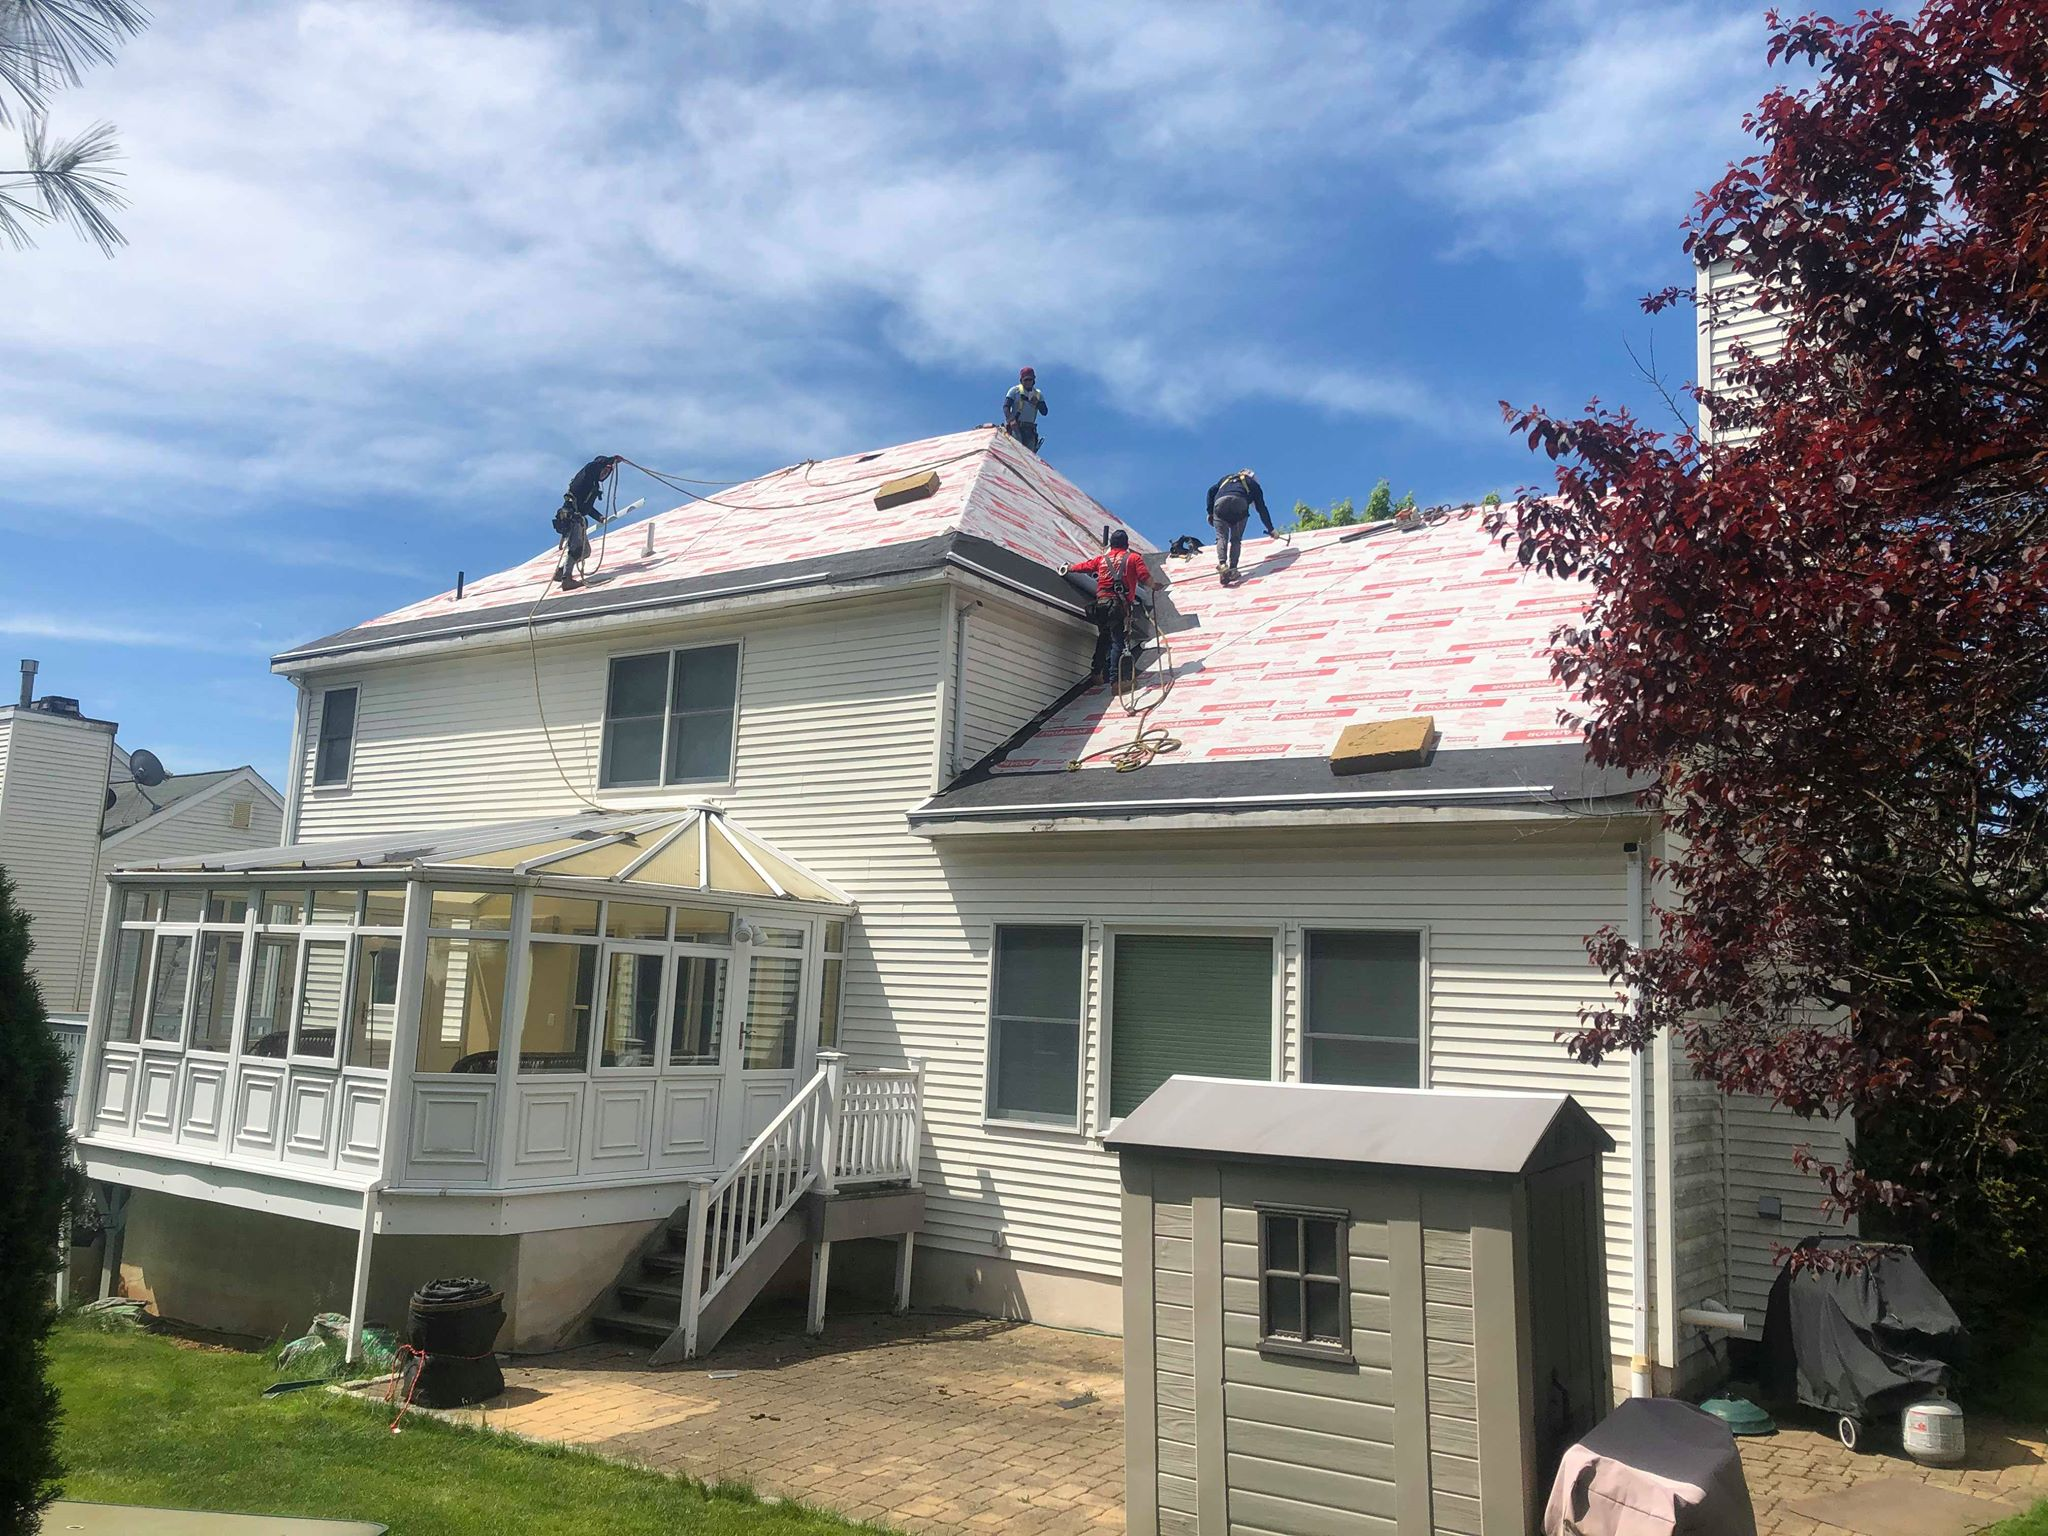 Roofing Replacement in Sparta NJ cephalo Roofing